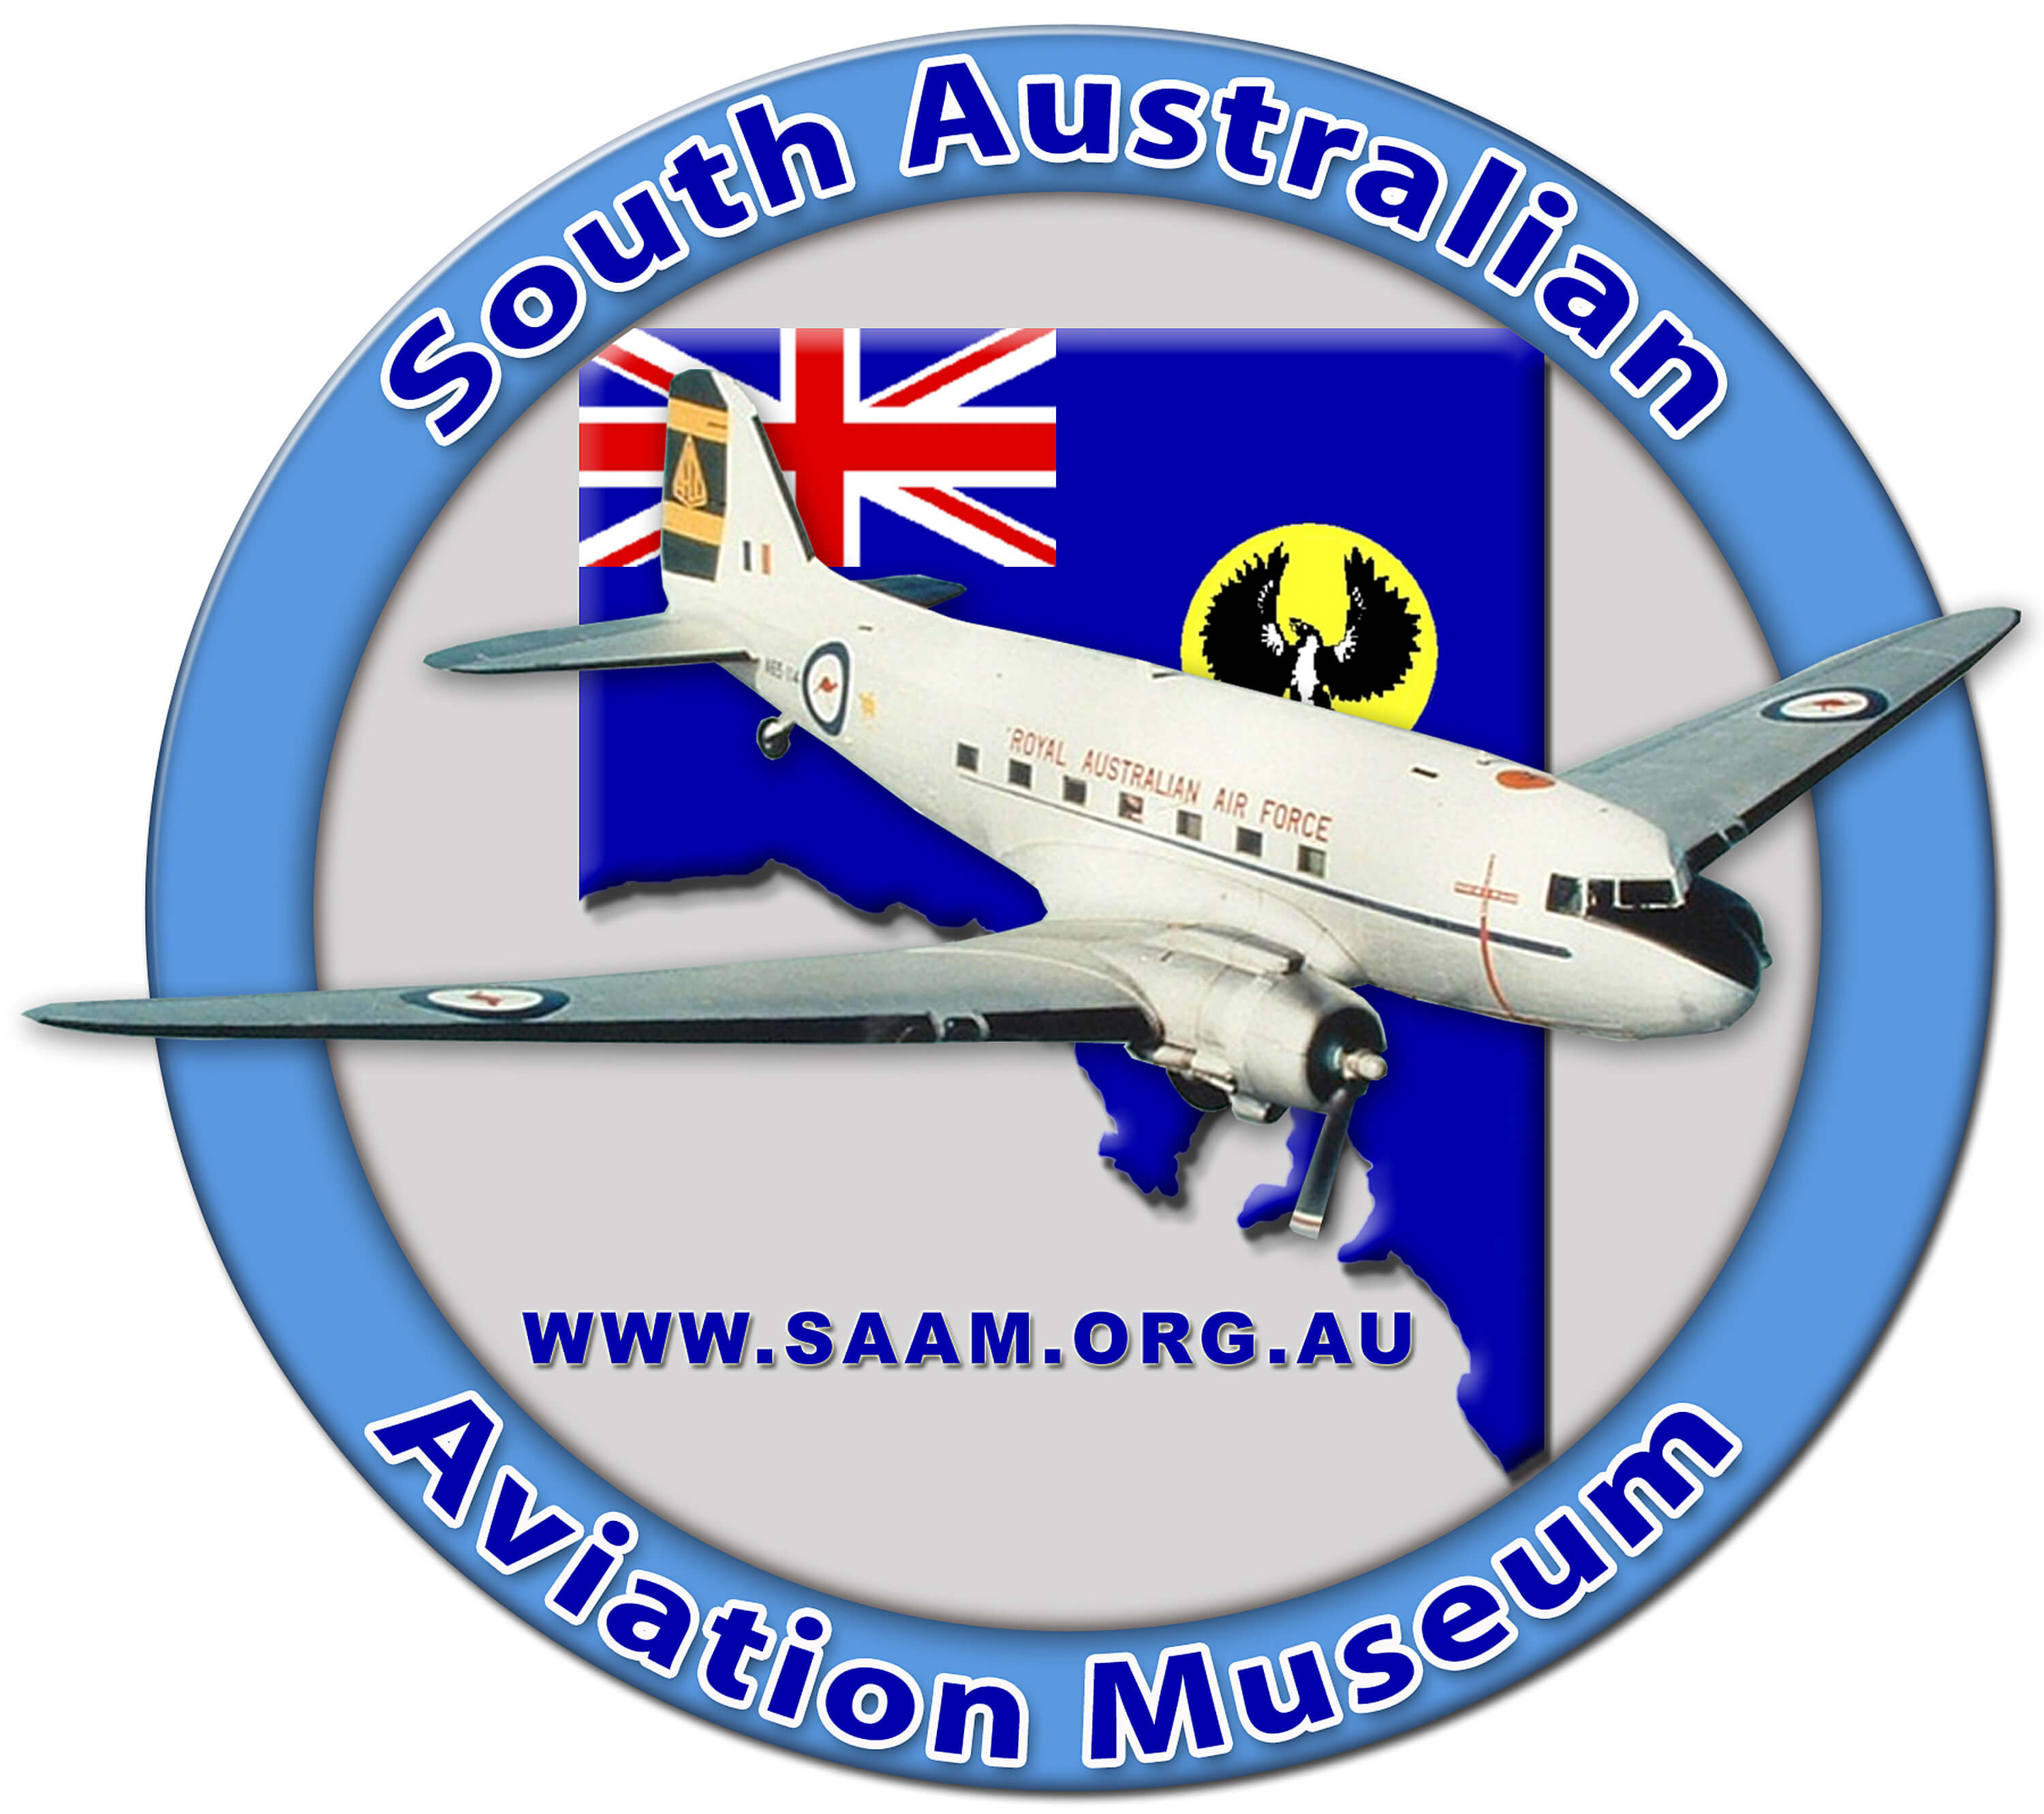 The South Australian Aviation Museum Inc